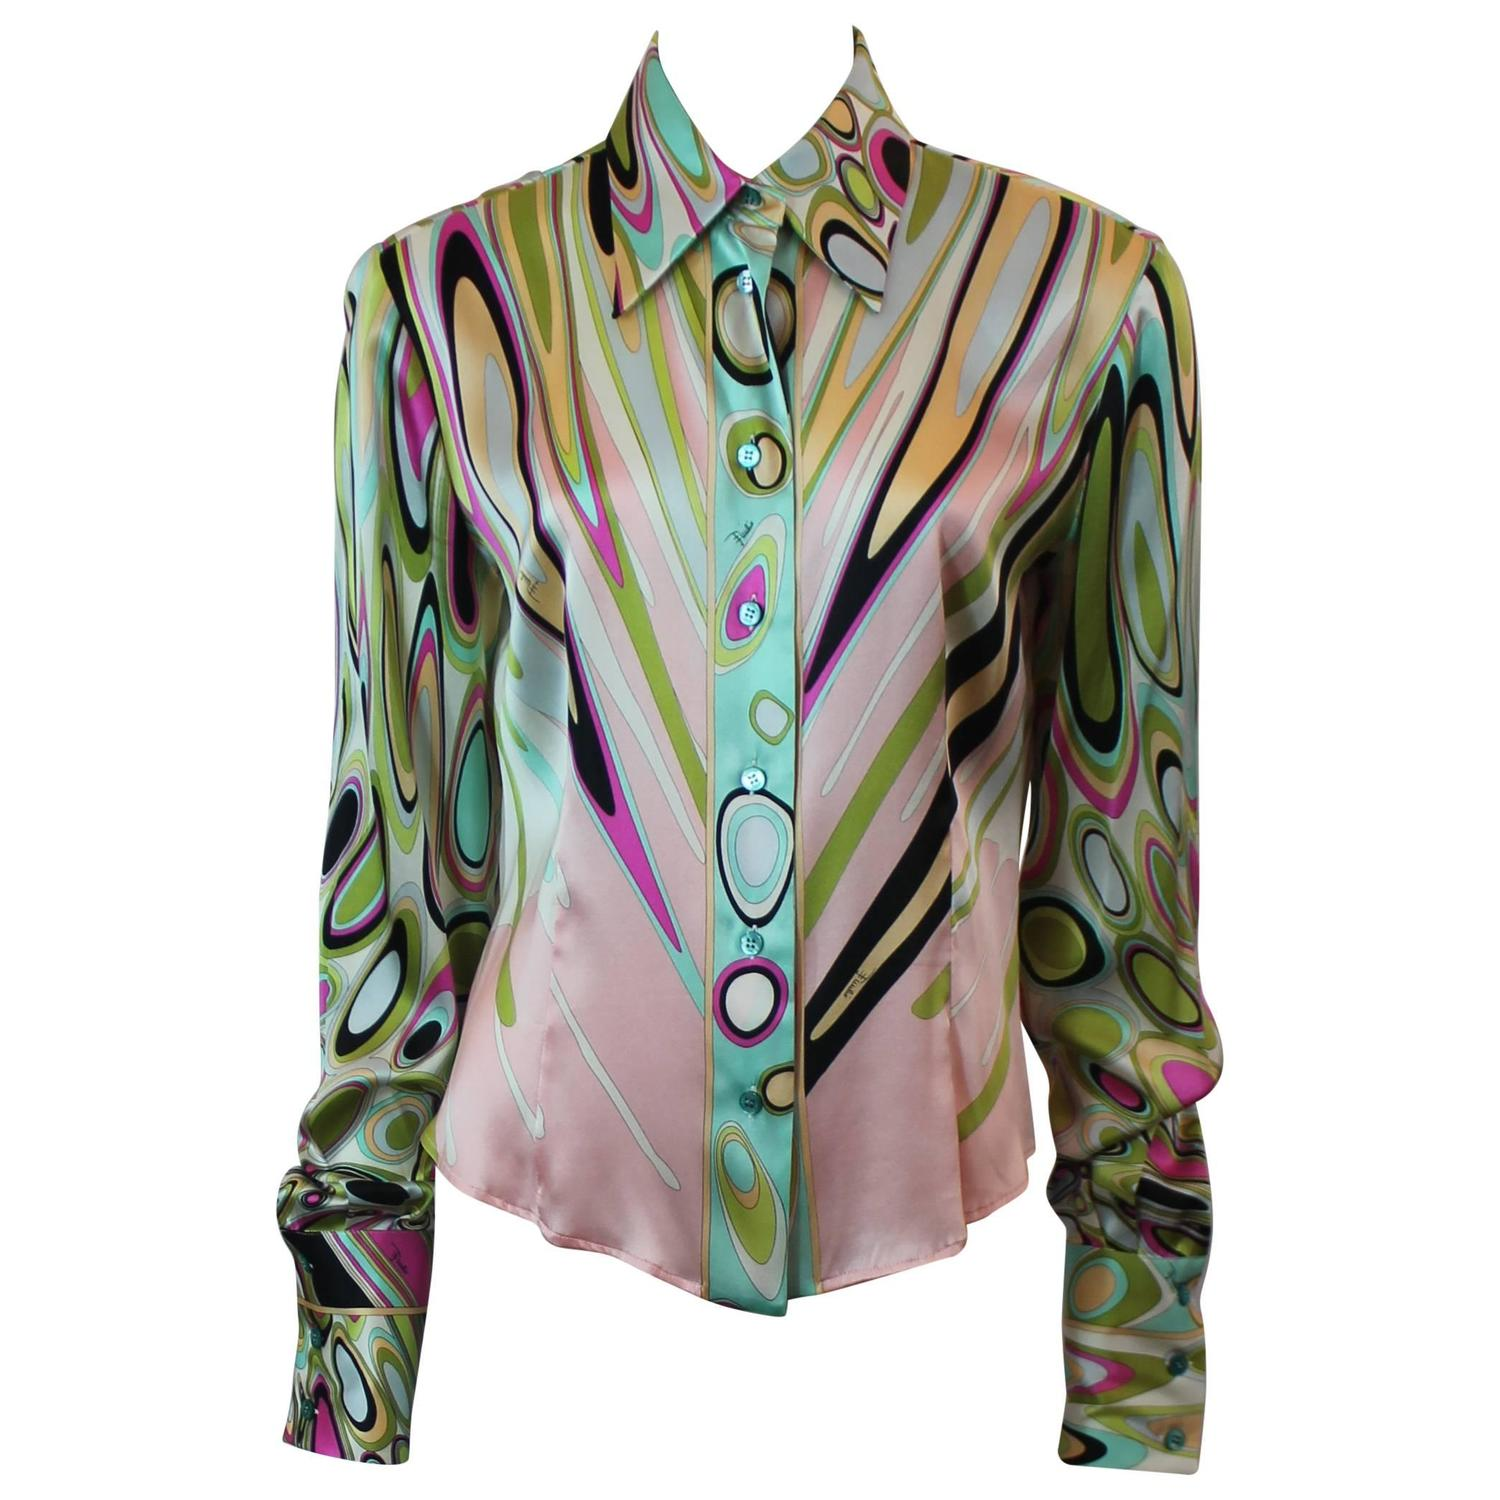 Emilio Pucci Multi Colored Silk Shimmery Printed Long